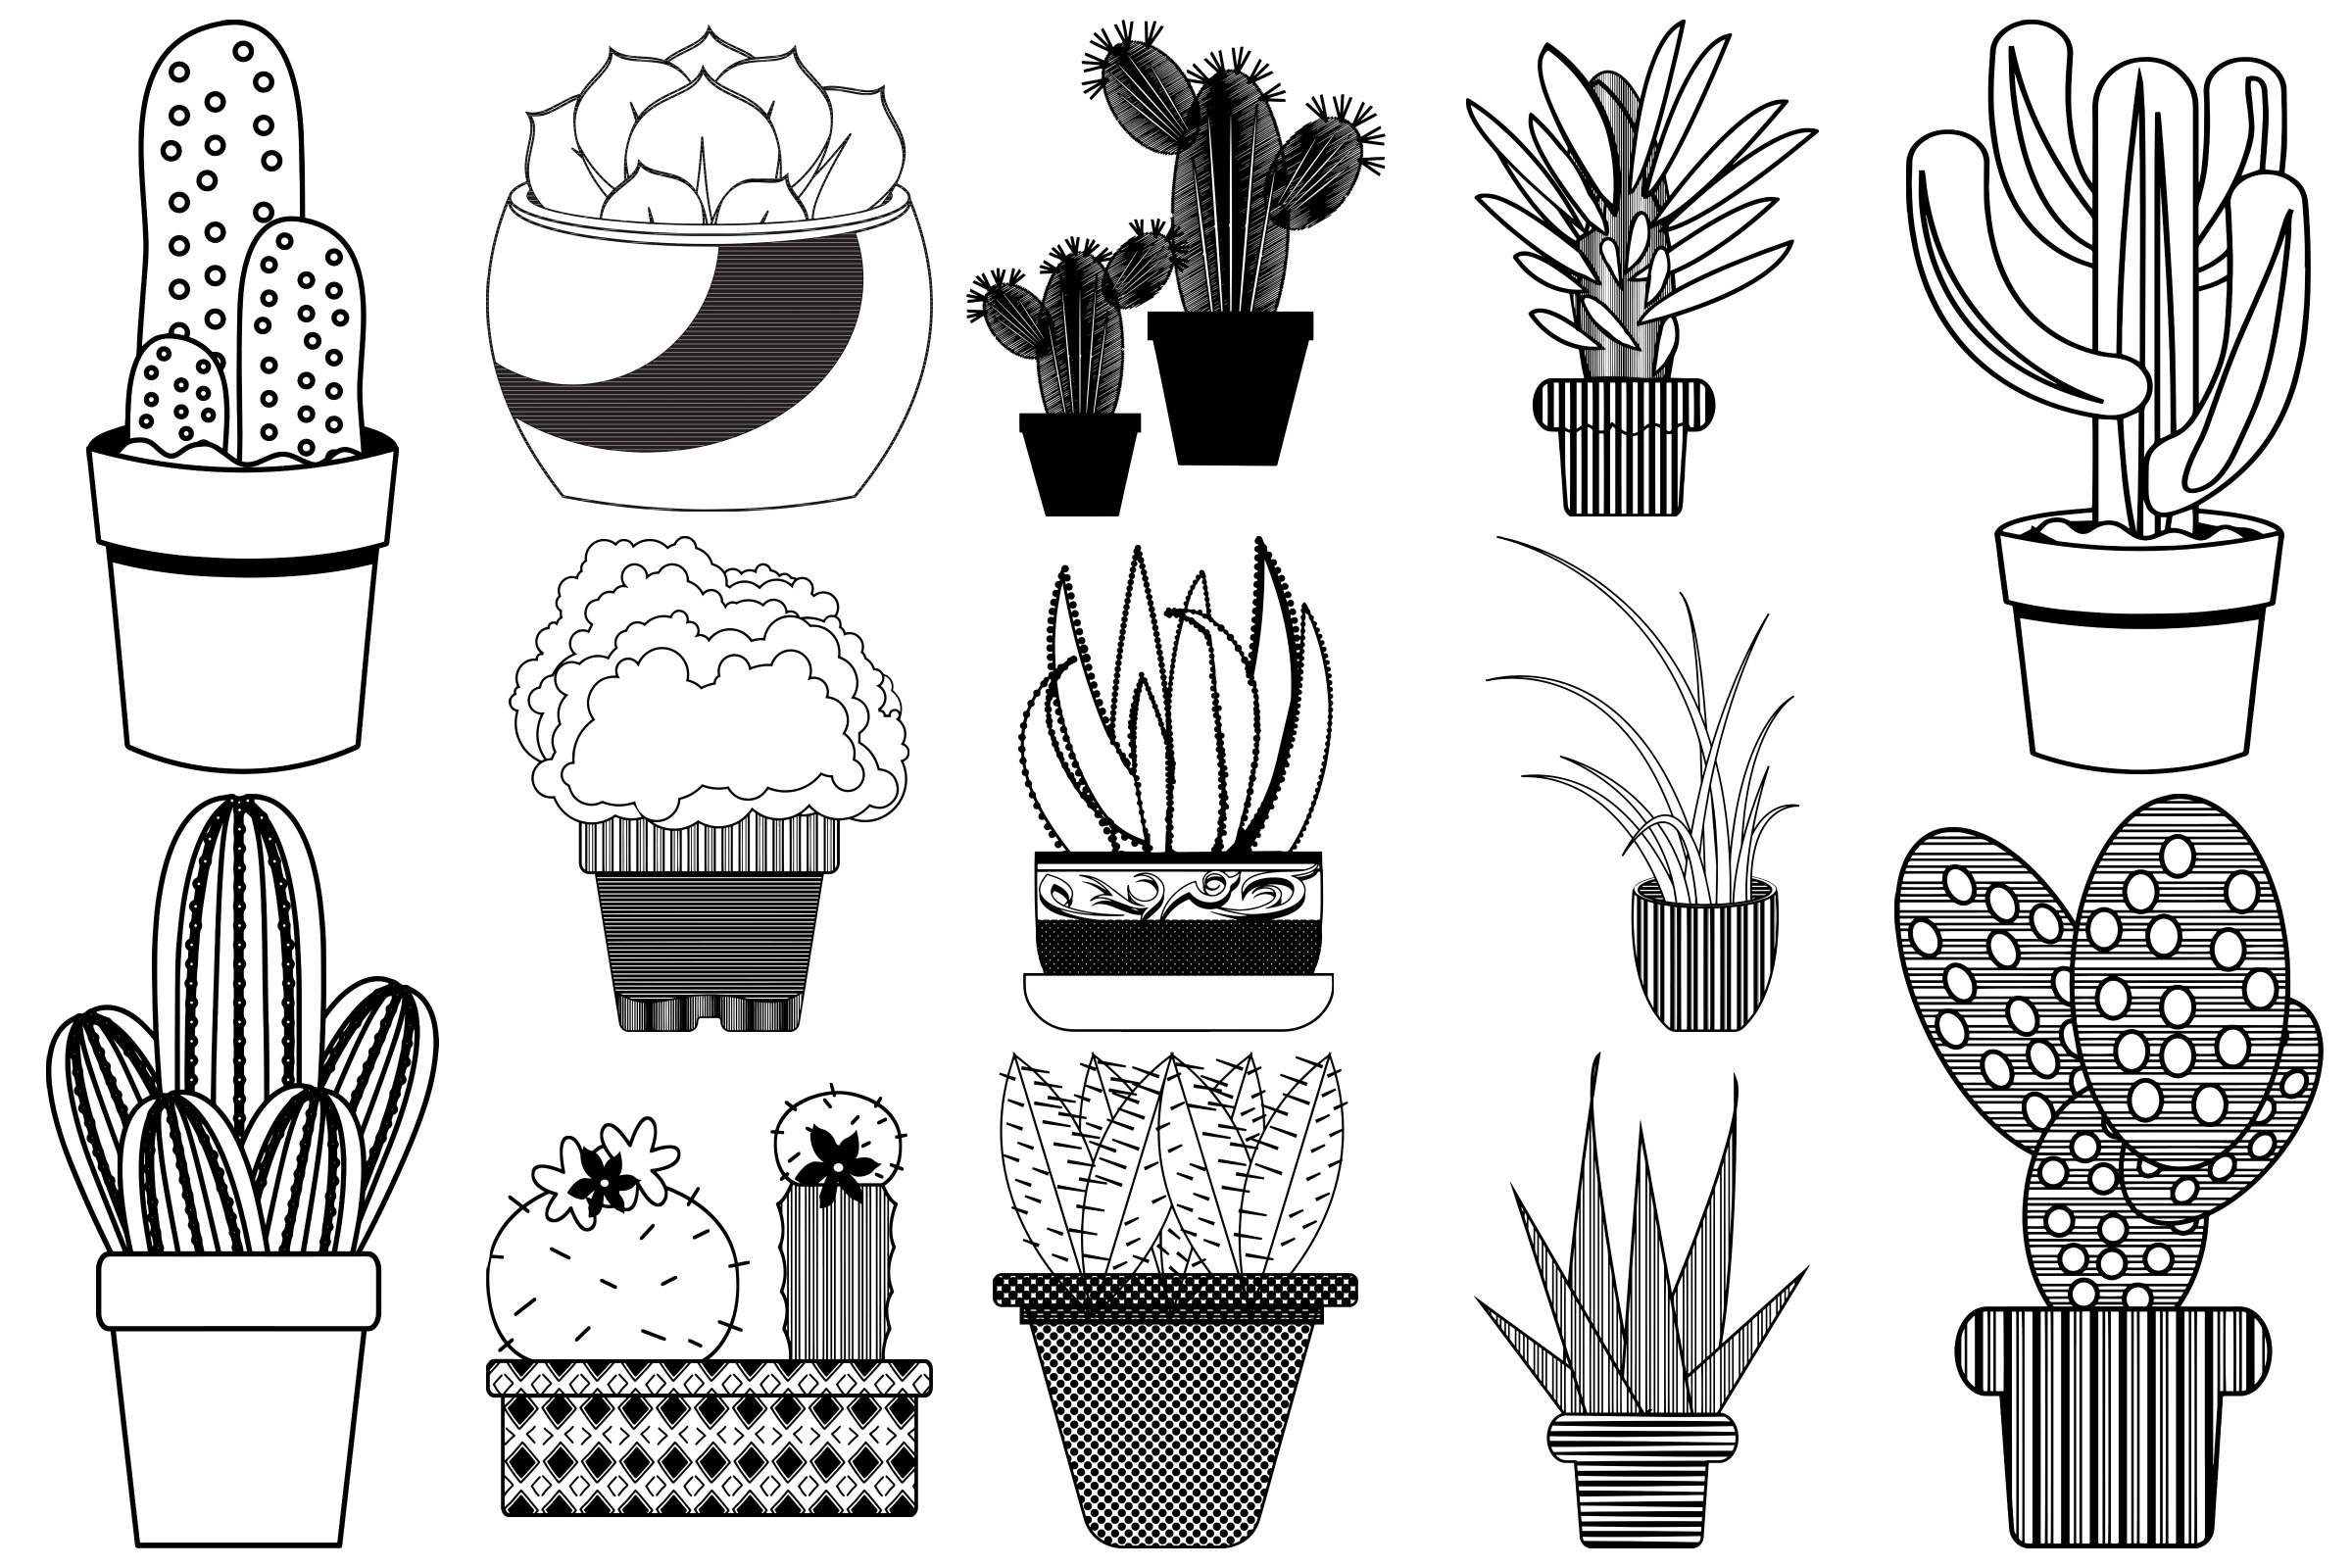 Cactus and Succulents AI EPS PNG, Vector Clip Art example image 4